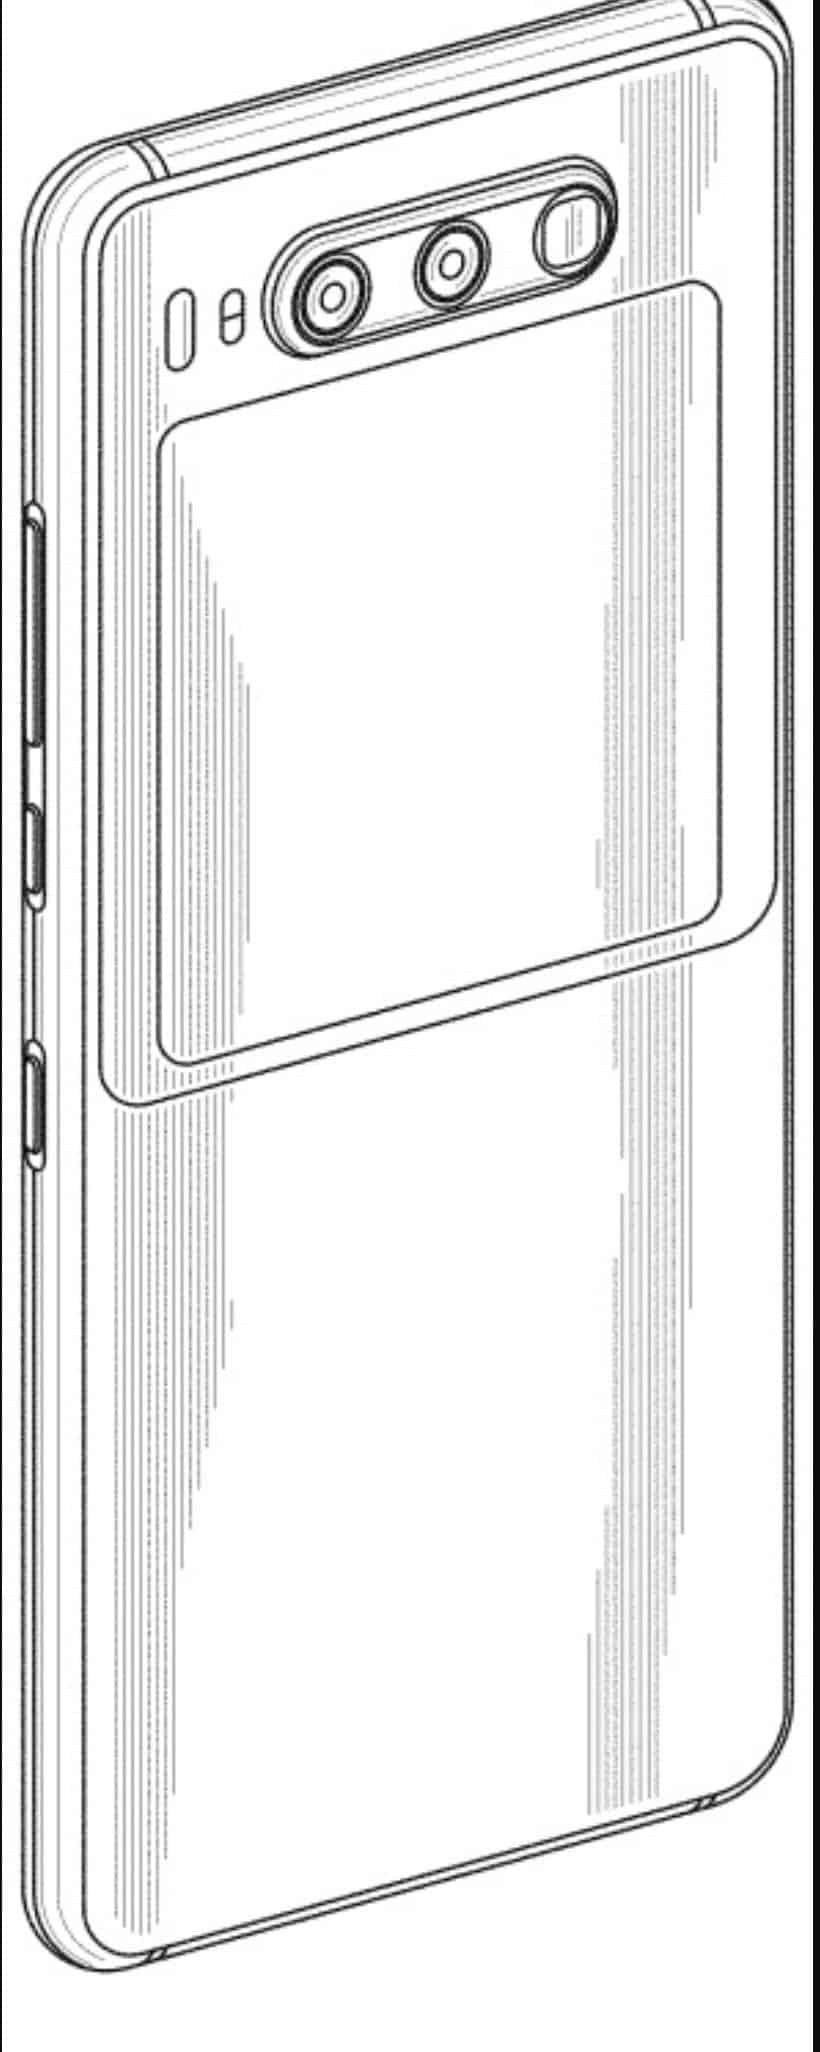 Huawei files a patent for a smartphone with a secondary display on the back